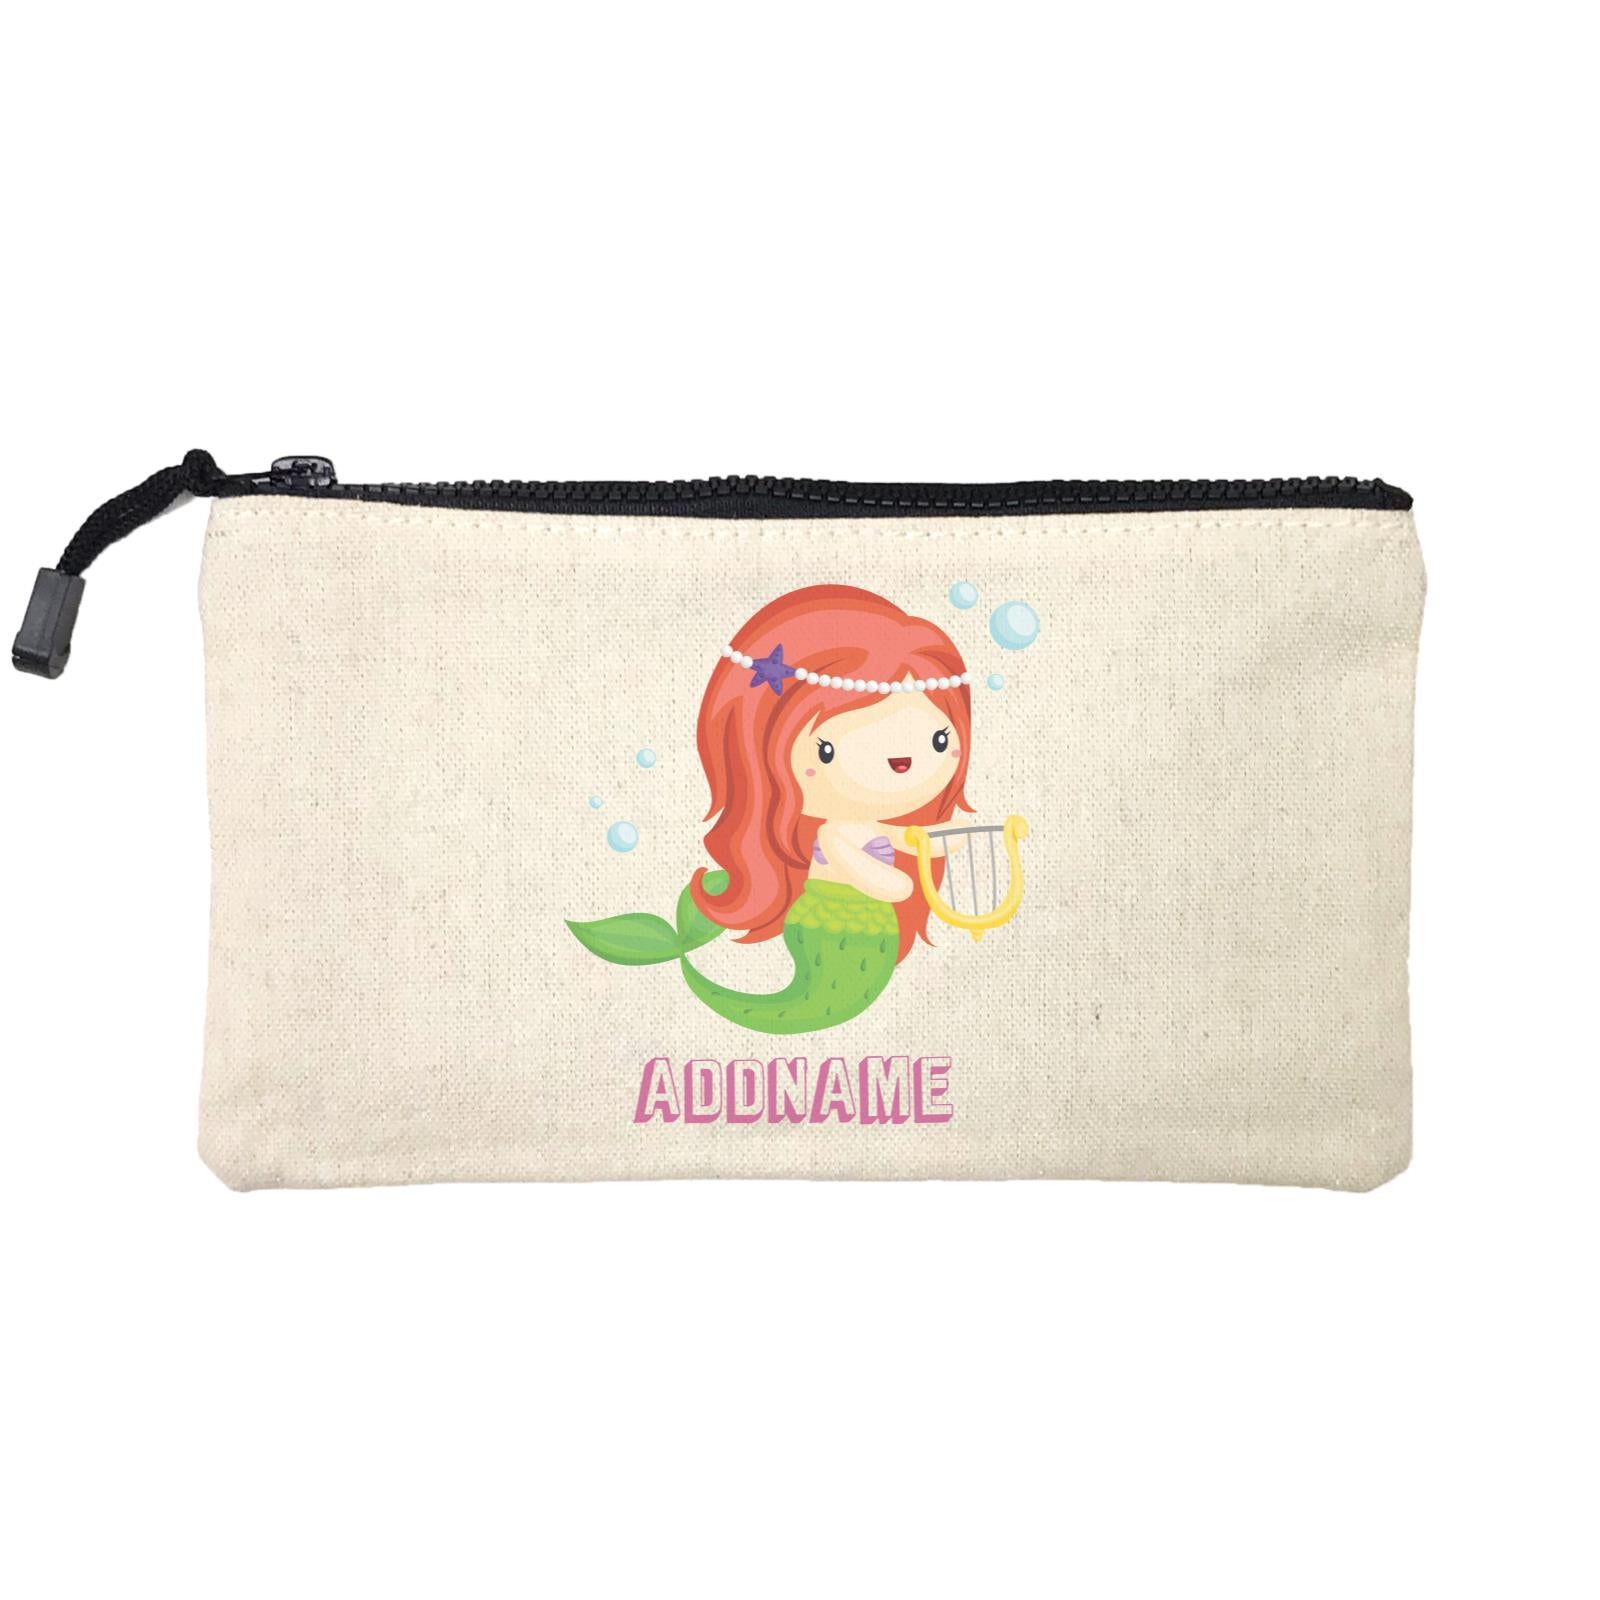 Birthday Mermaid Red Long Hair Mermaid Playing Harp Addname Mini Accessories Stationery Pouch